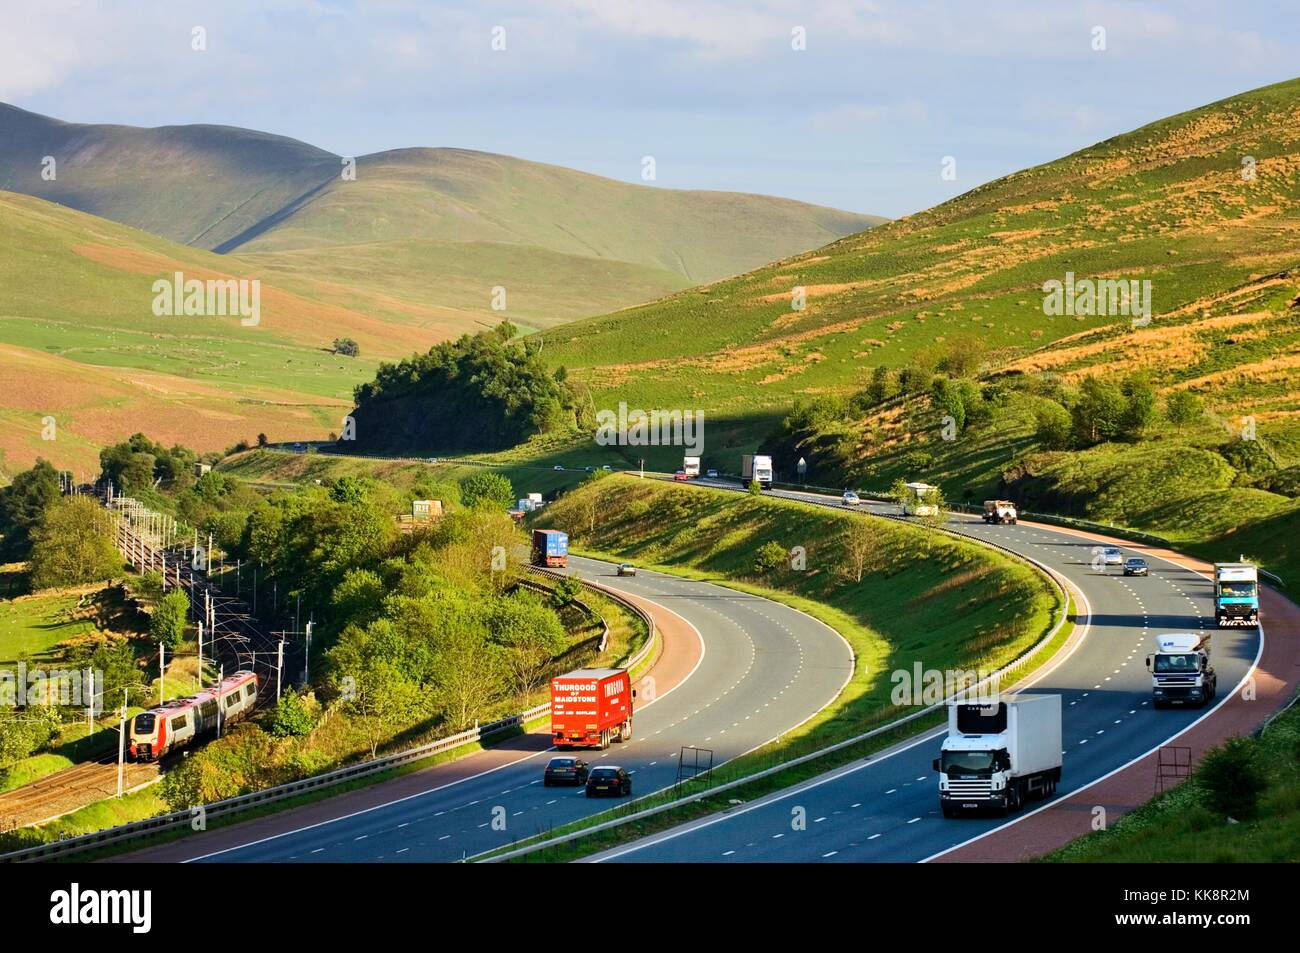 M6 motorway passing through east Cumbria hills, the Howgill Fells, 2 miles south of Tebay northwest England. Looking - Stock Image